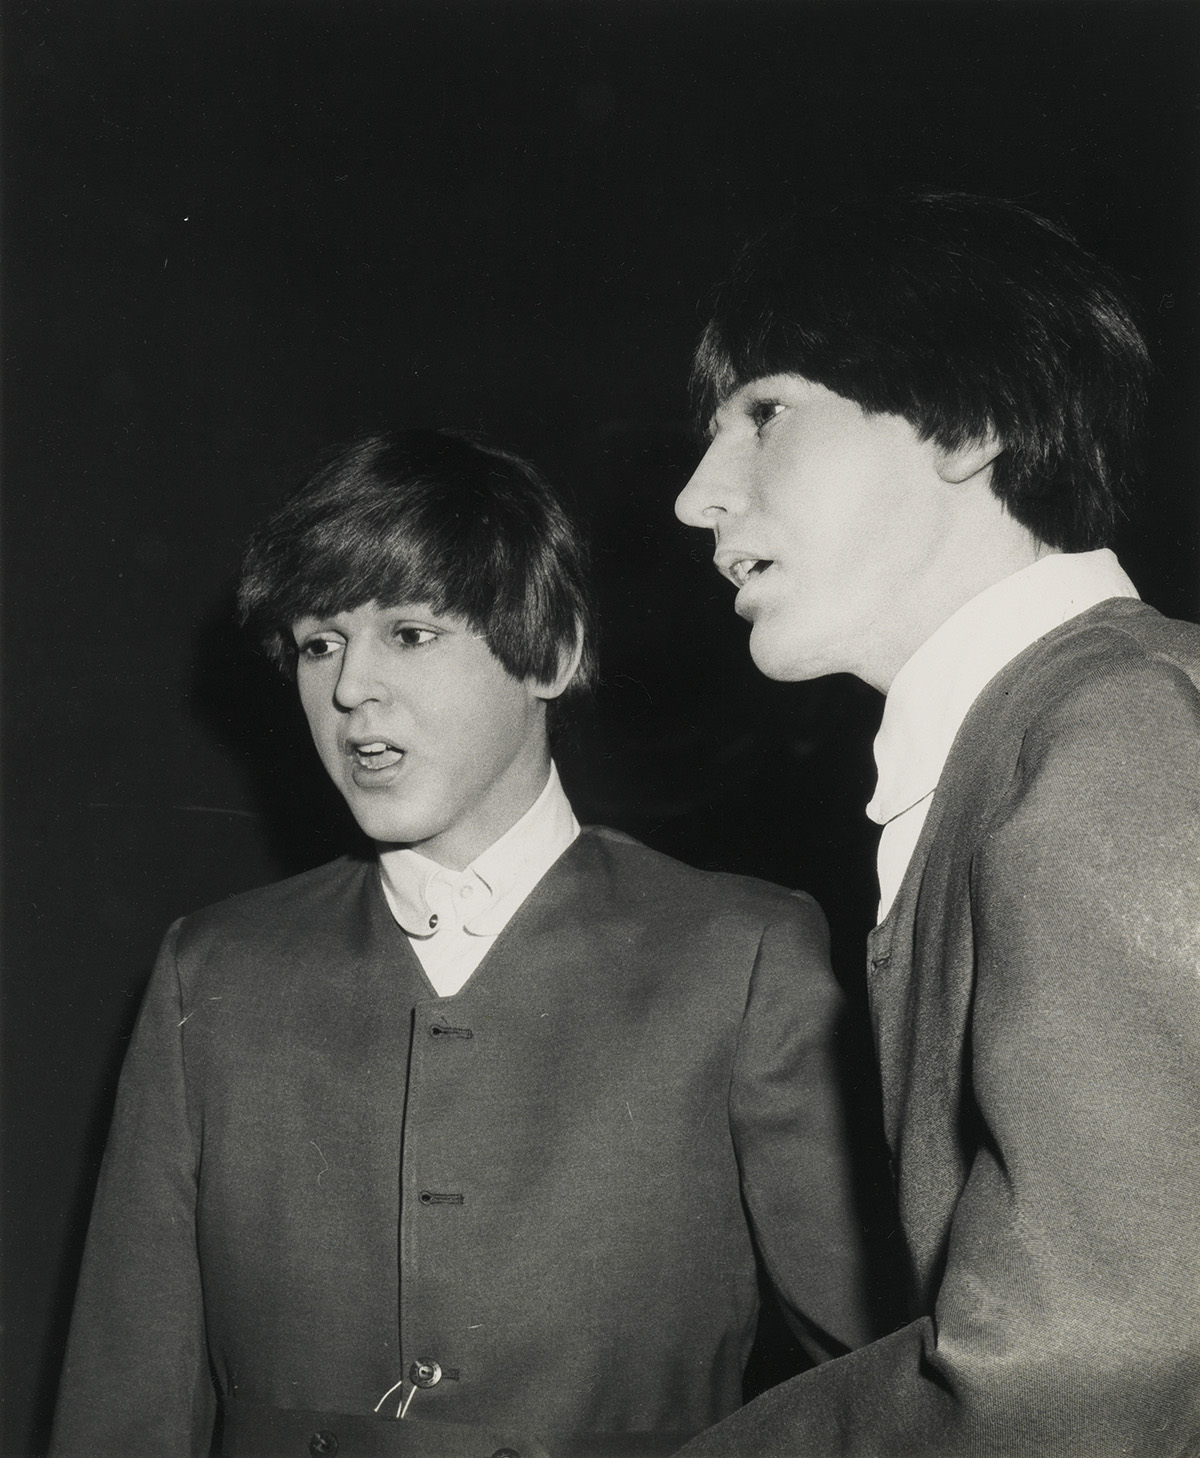 (MADAME-TUSSAUDS-WAX-MUSEUM--THE-BEATLES)-A-mini-archive-documenting-the-production-of-the-Beatles-exhibit-for-Madame-Tussauds-in-Holly